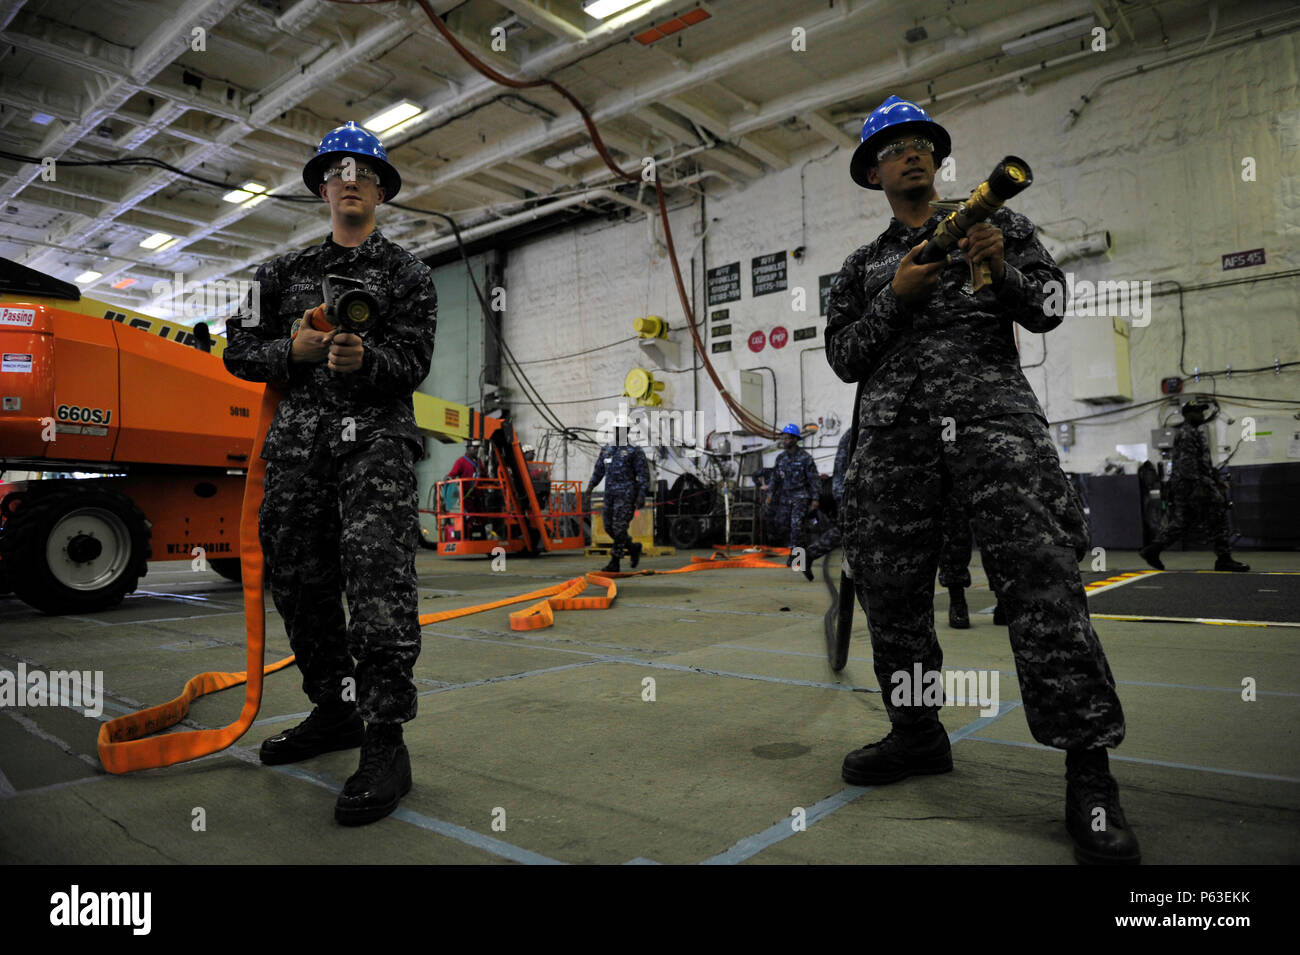 NEWPORT NEWS, Va. (Apr 19, 2016) -- Sailors assigned to Pre-Commissioning Unit Gerald R. Ford (CVN 78) perform firefighting drills in the ship's hangar bay. Ford is the first of a new class of aircraft carriers currently under construction by Huntington Ingalls Industries Newport News Shipbuilding. (U.S. Navy photo by Mass Communication Specialist Seaman Apprentice Connor Loessin/Released) - Stock Image